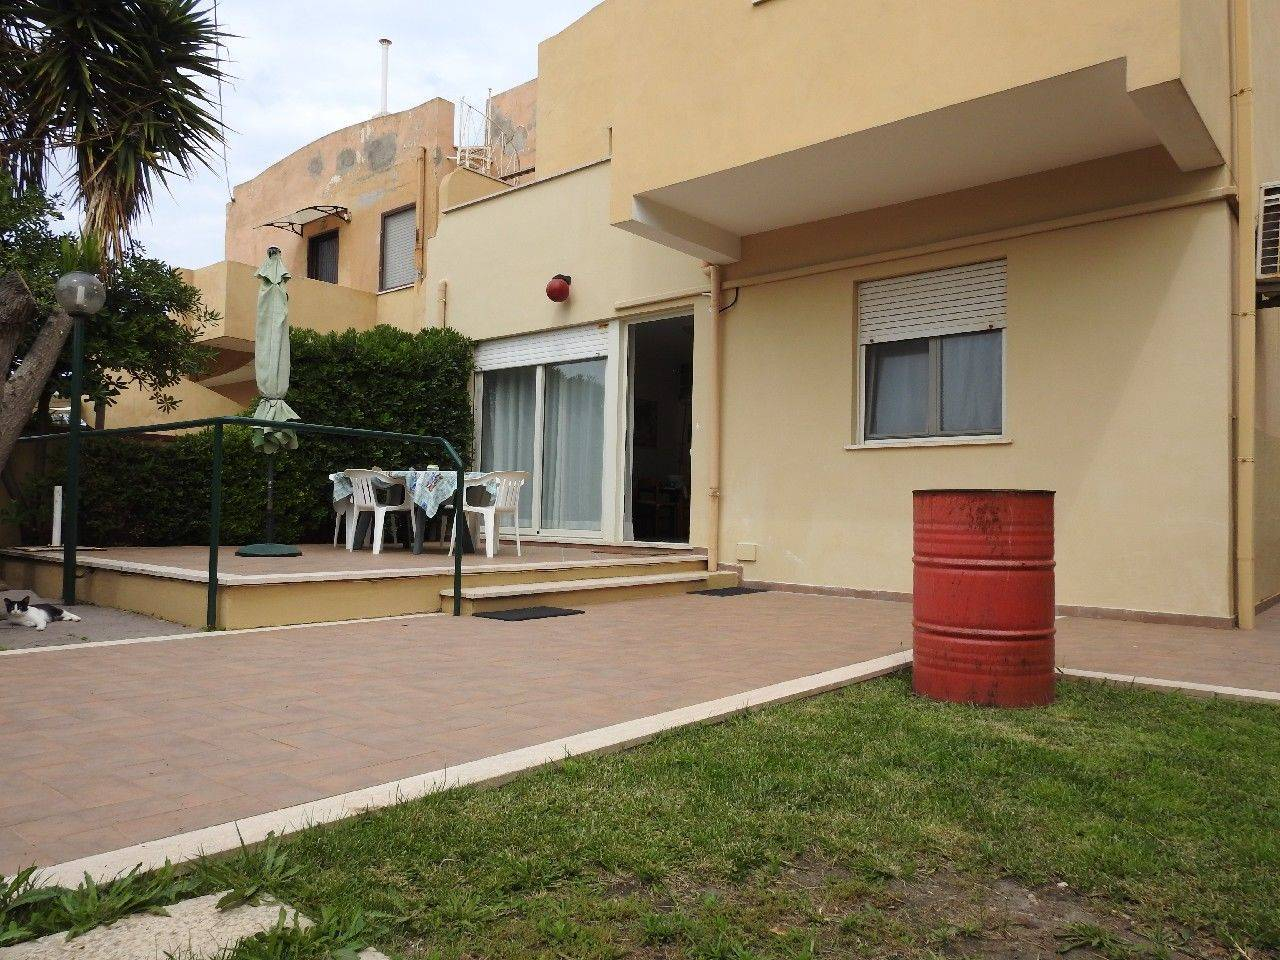 SANTA MARINELLA, Independent Apartment for the vacation for rent of 80 Sq. mt., Excellent Condition, Heating Individual heating system, Energetic